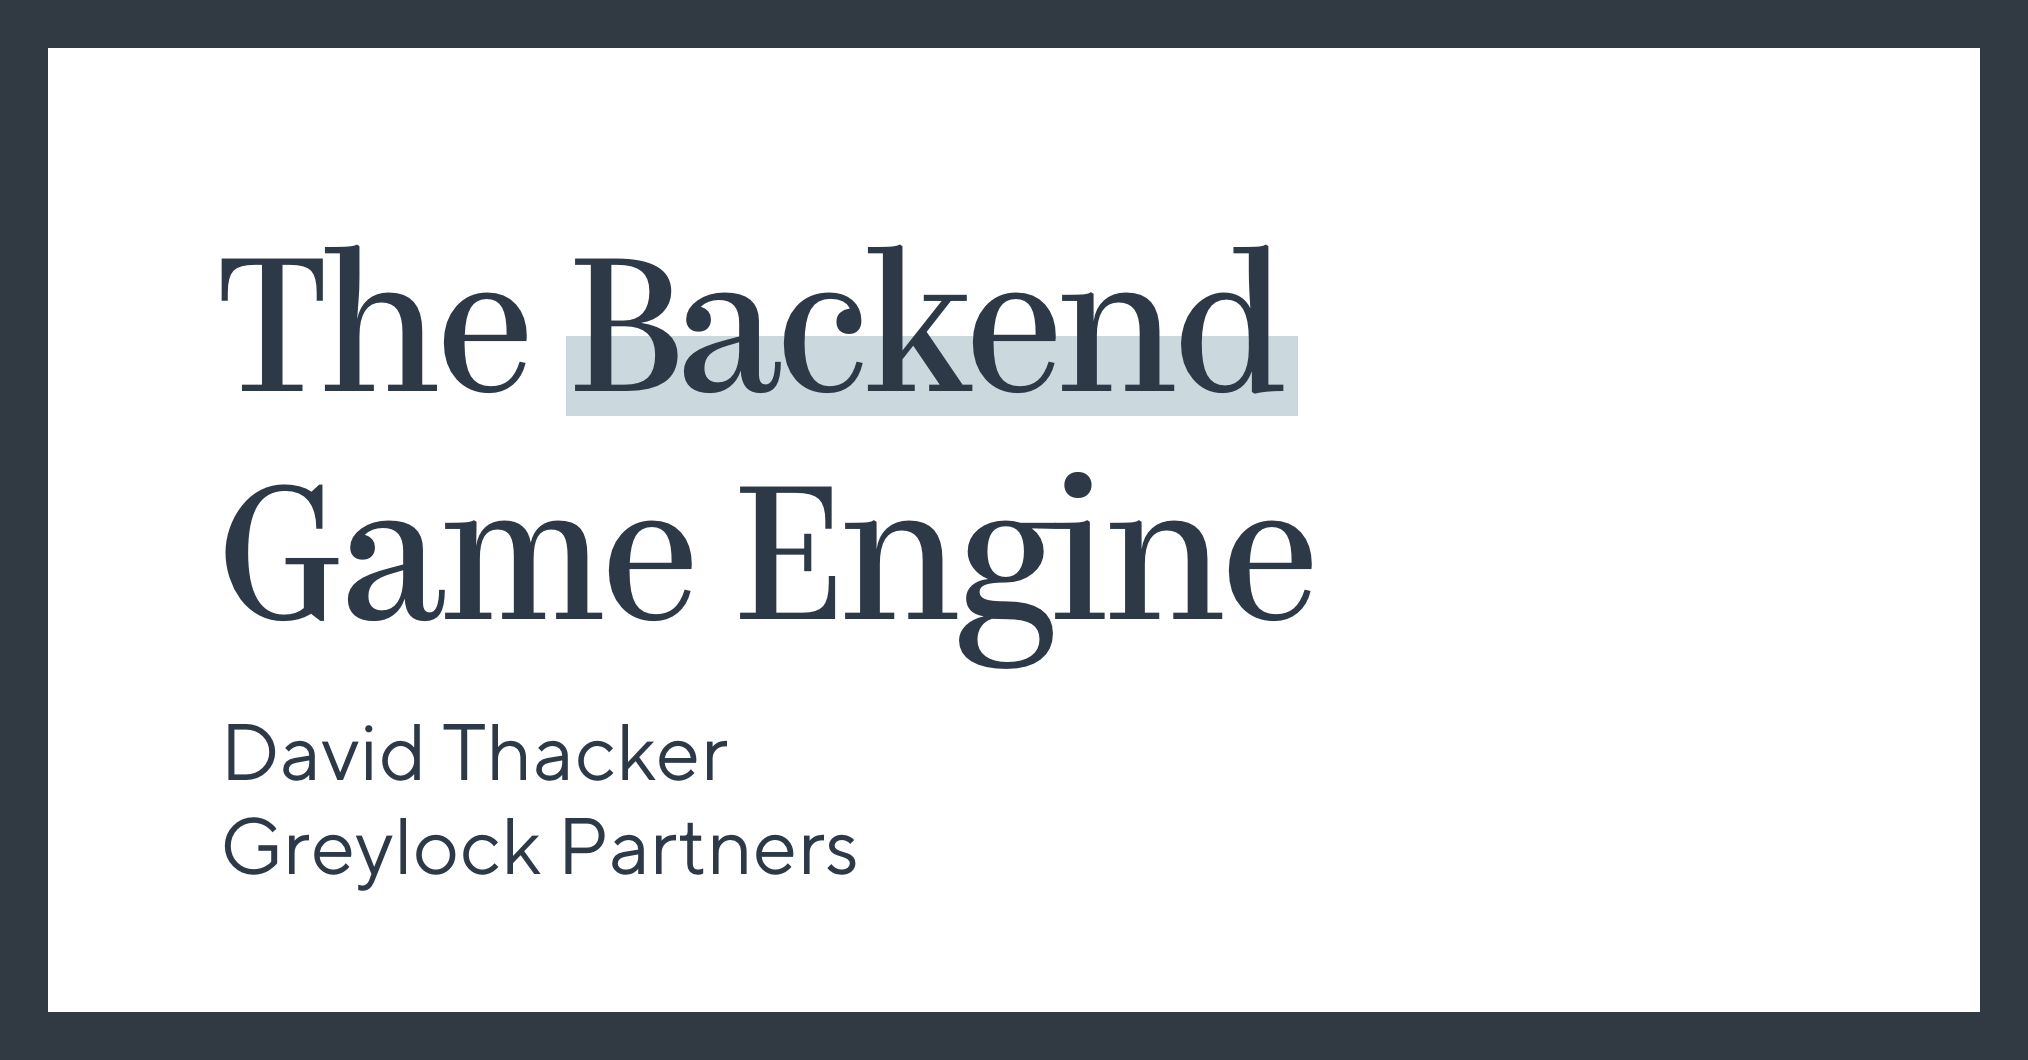 The Backend Game Engine